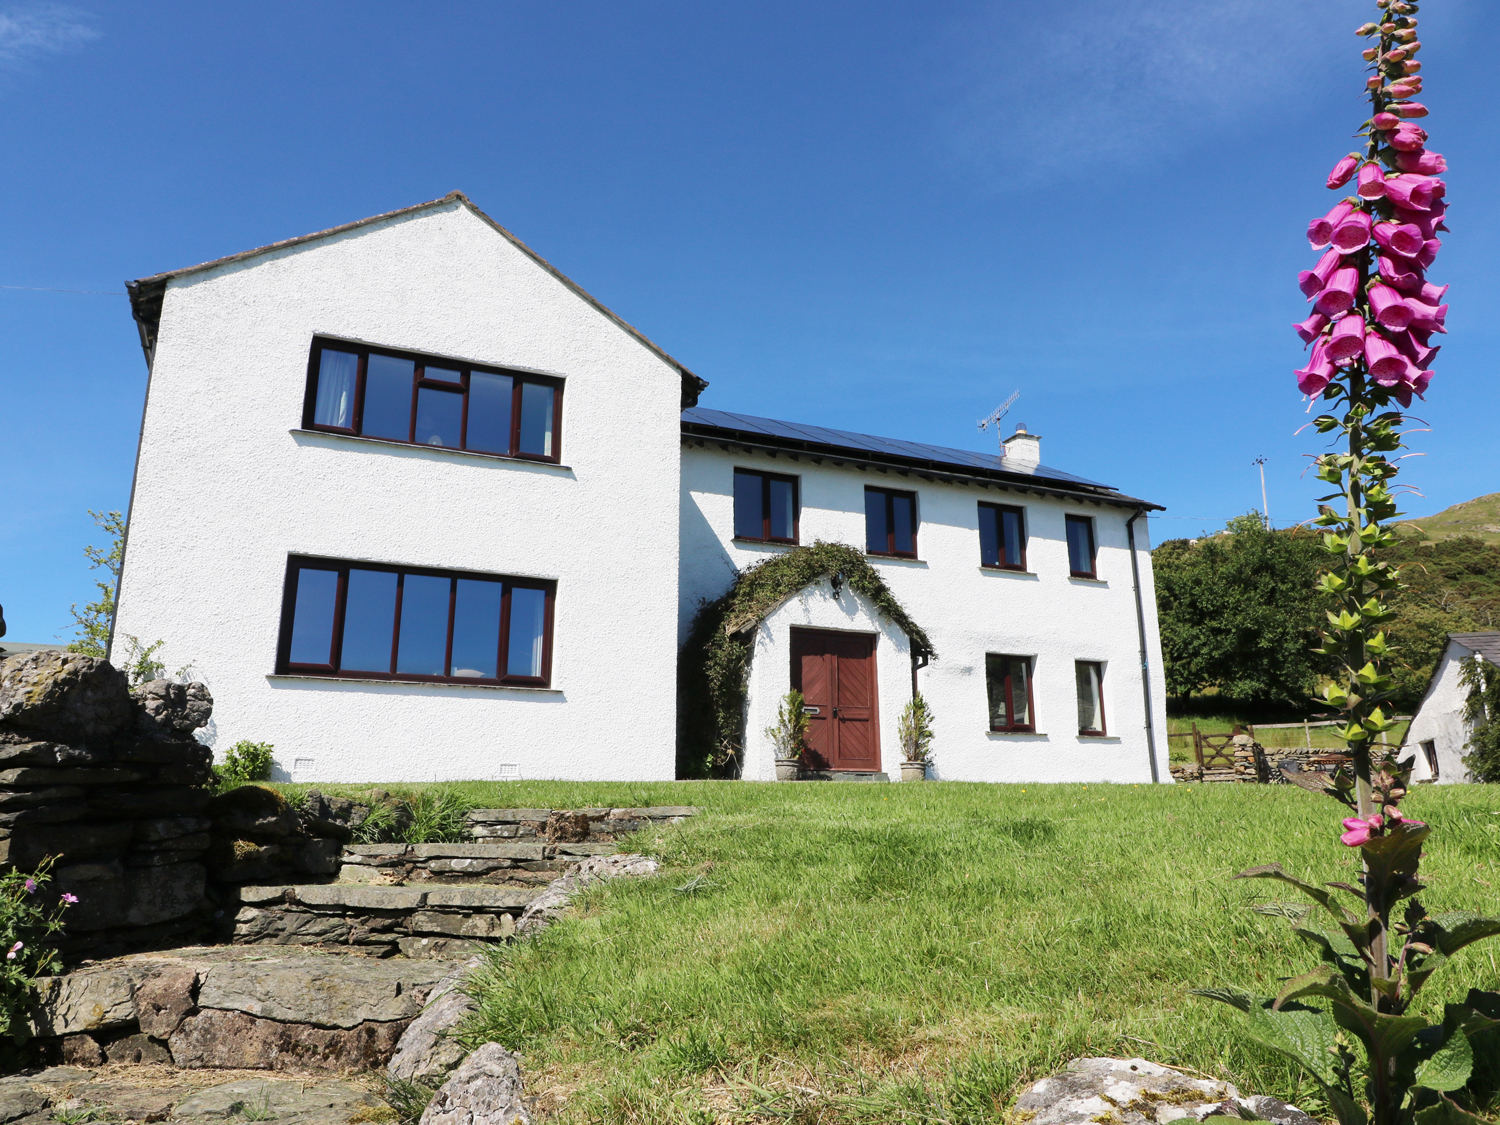 Ghyll Bank House